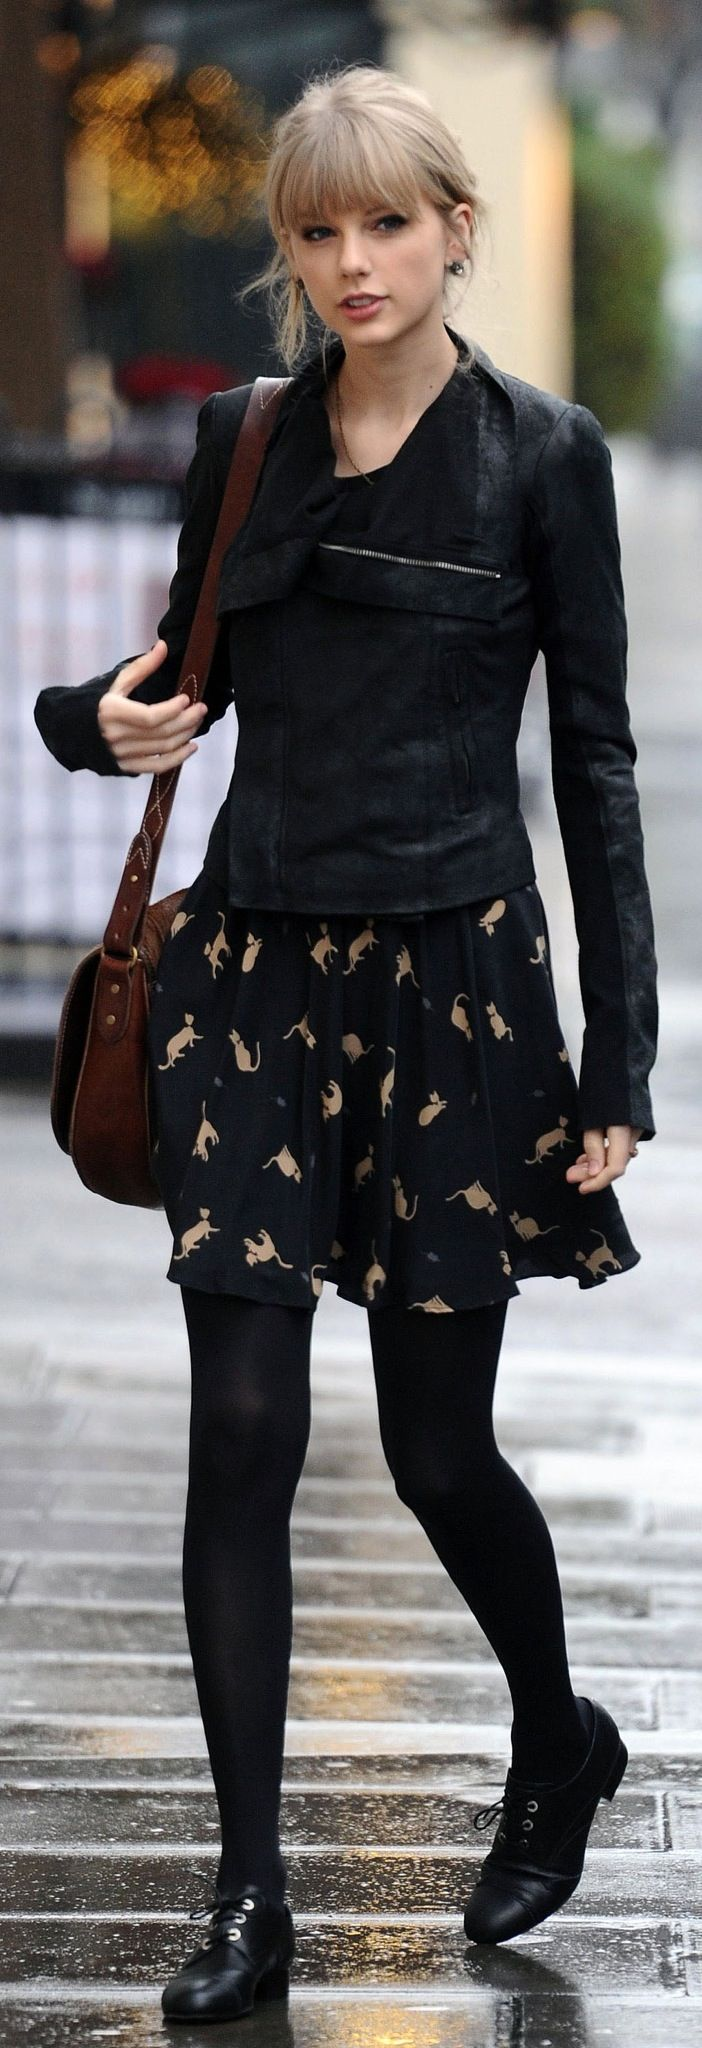 No such thing as too much black! *squints* ARE THOSE CATS ON HER SKIRT? LOVE ALL OF THIS